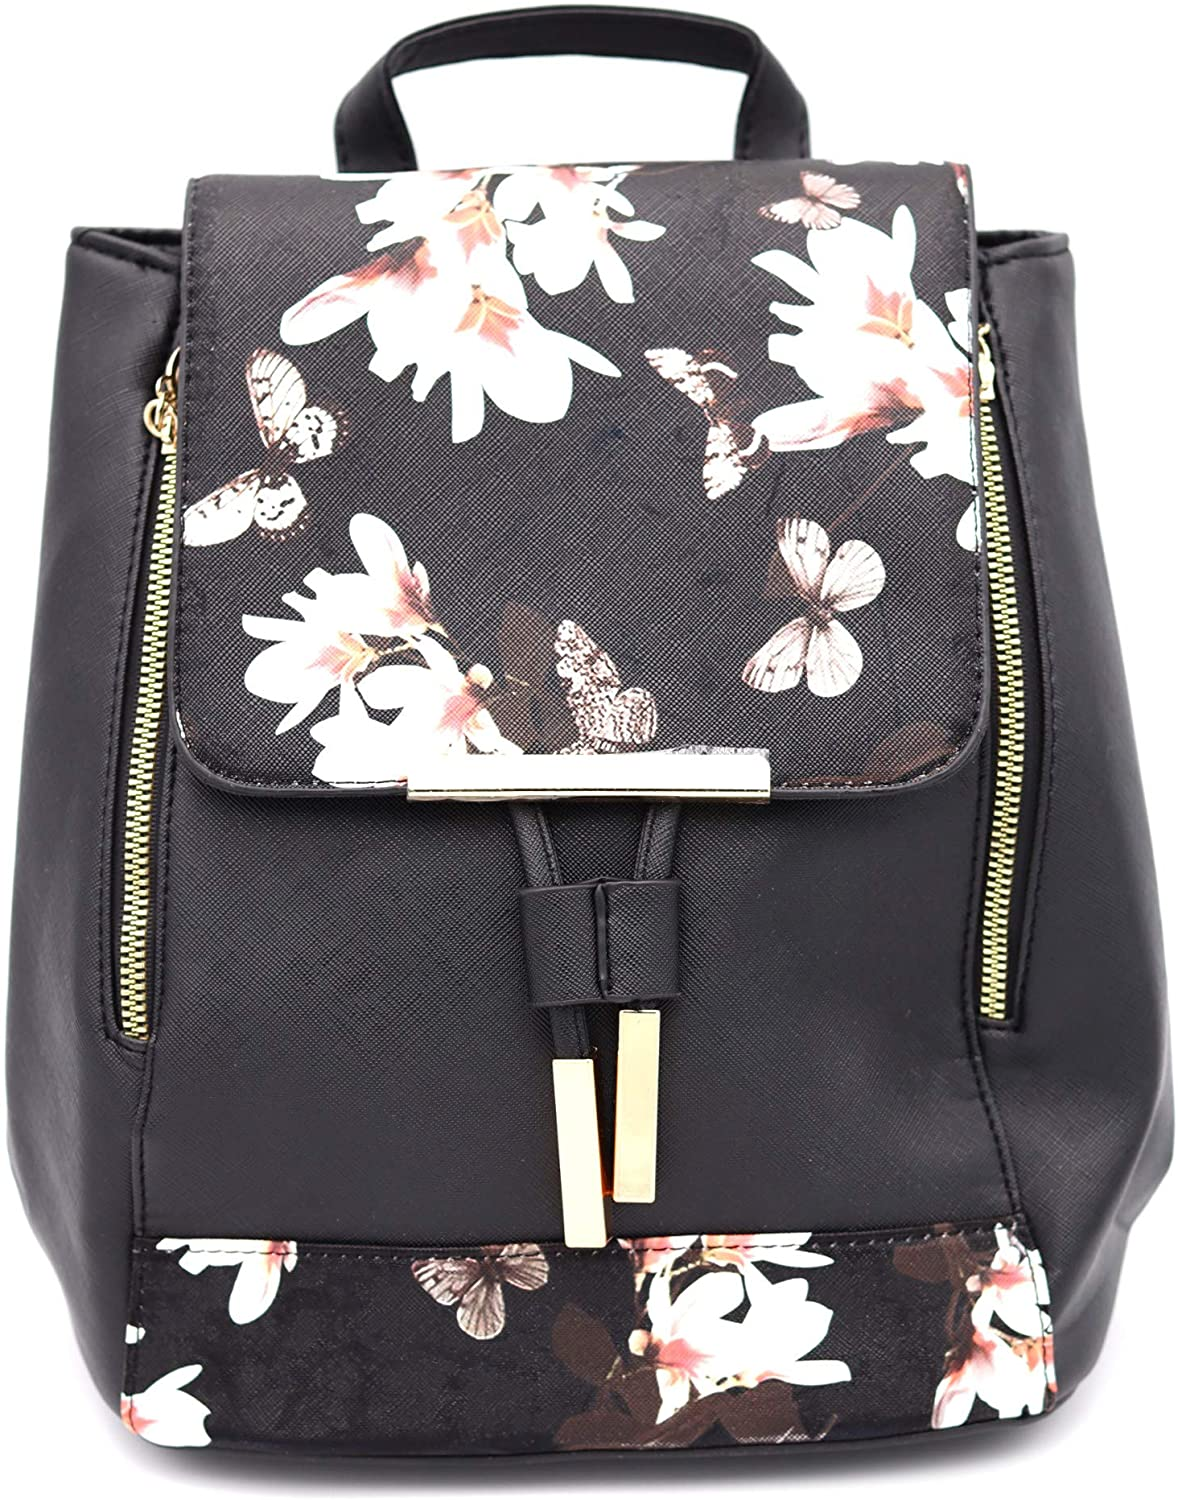 Black And Pink Floral Fashion Backpack For Woman